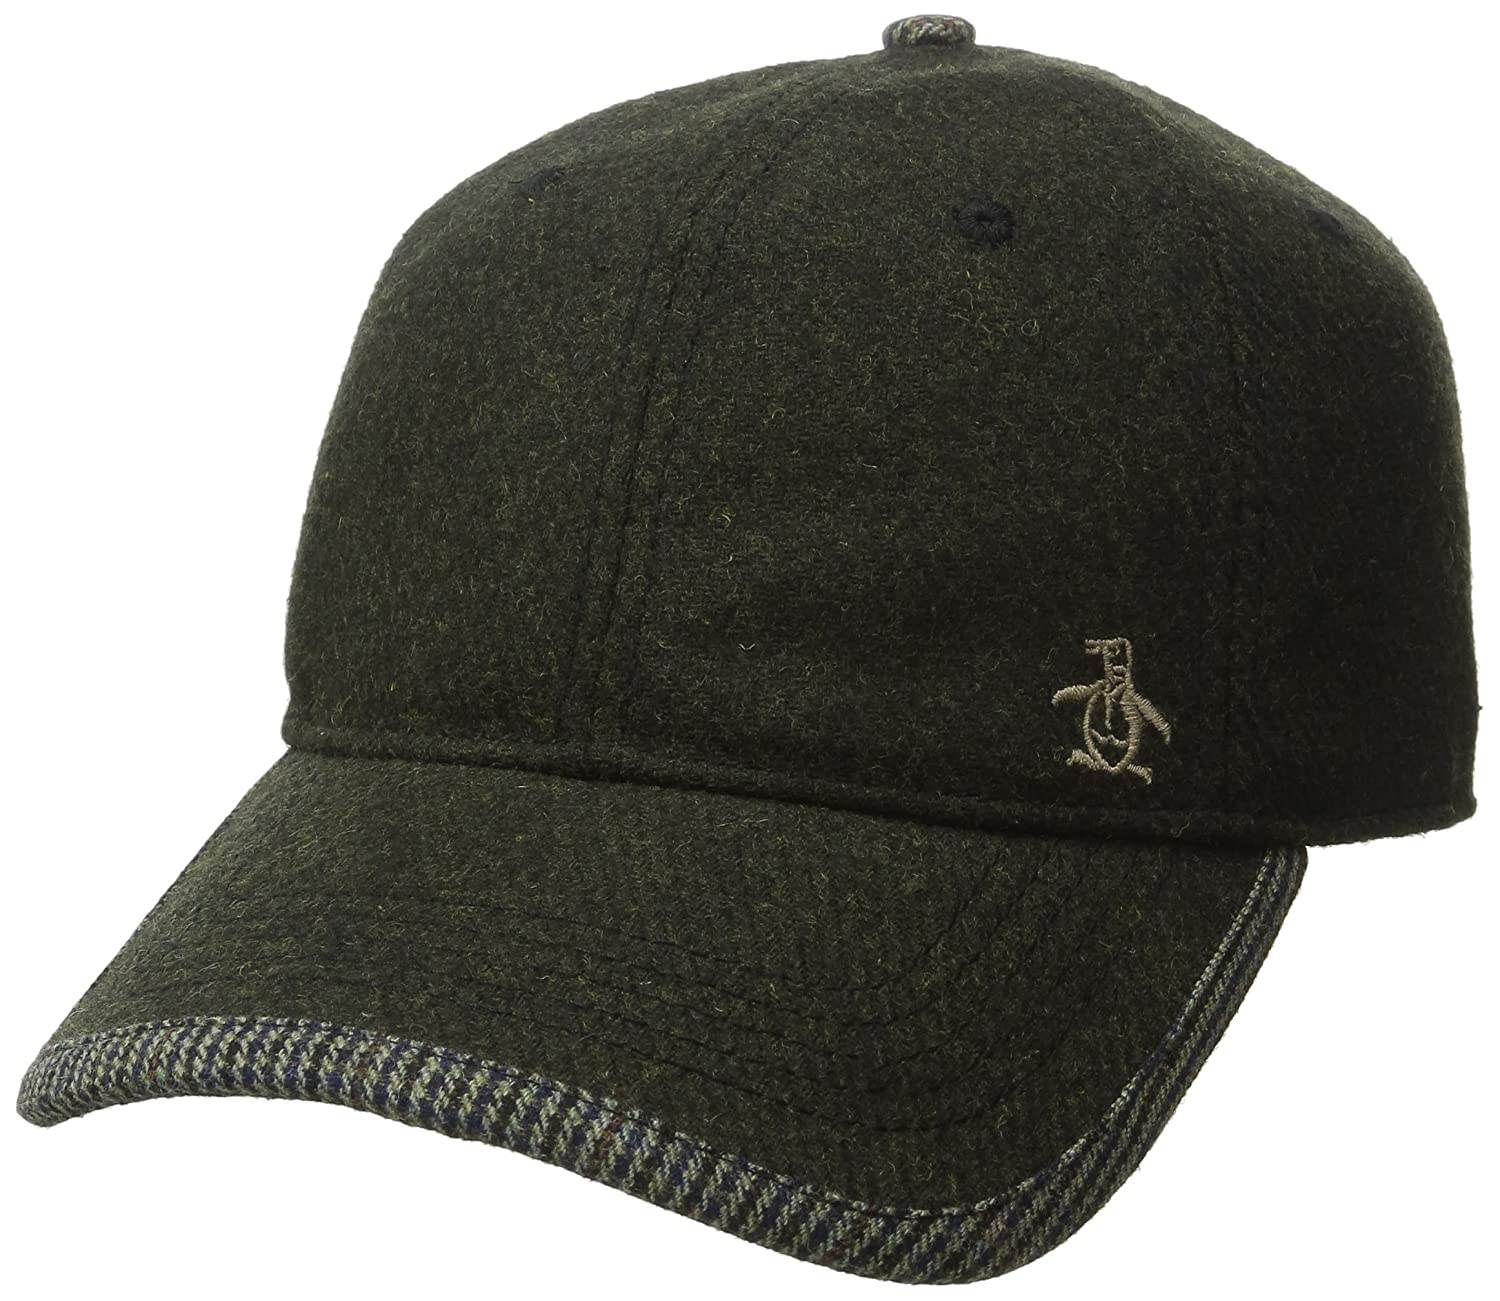 Amazon.com: Original Penguin Mens Woolen Baseball Cap, Dusty Olive, One Size: Clothing